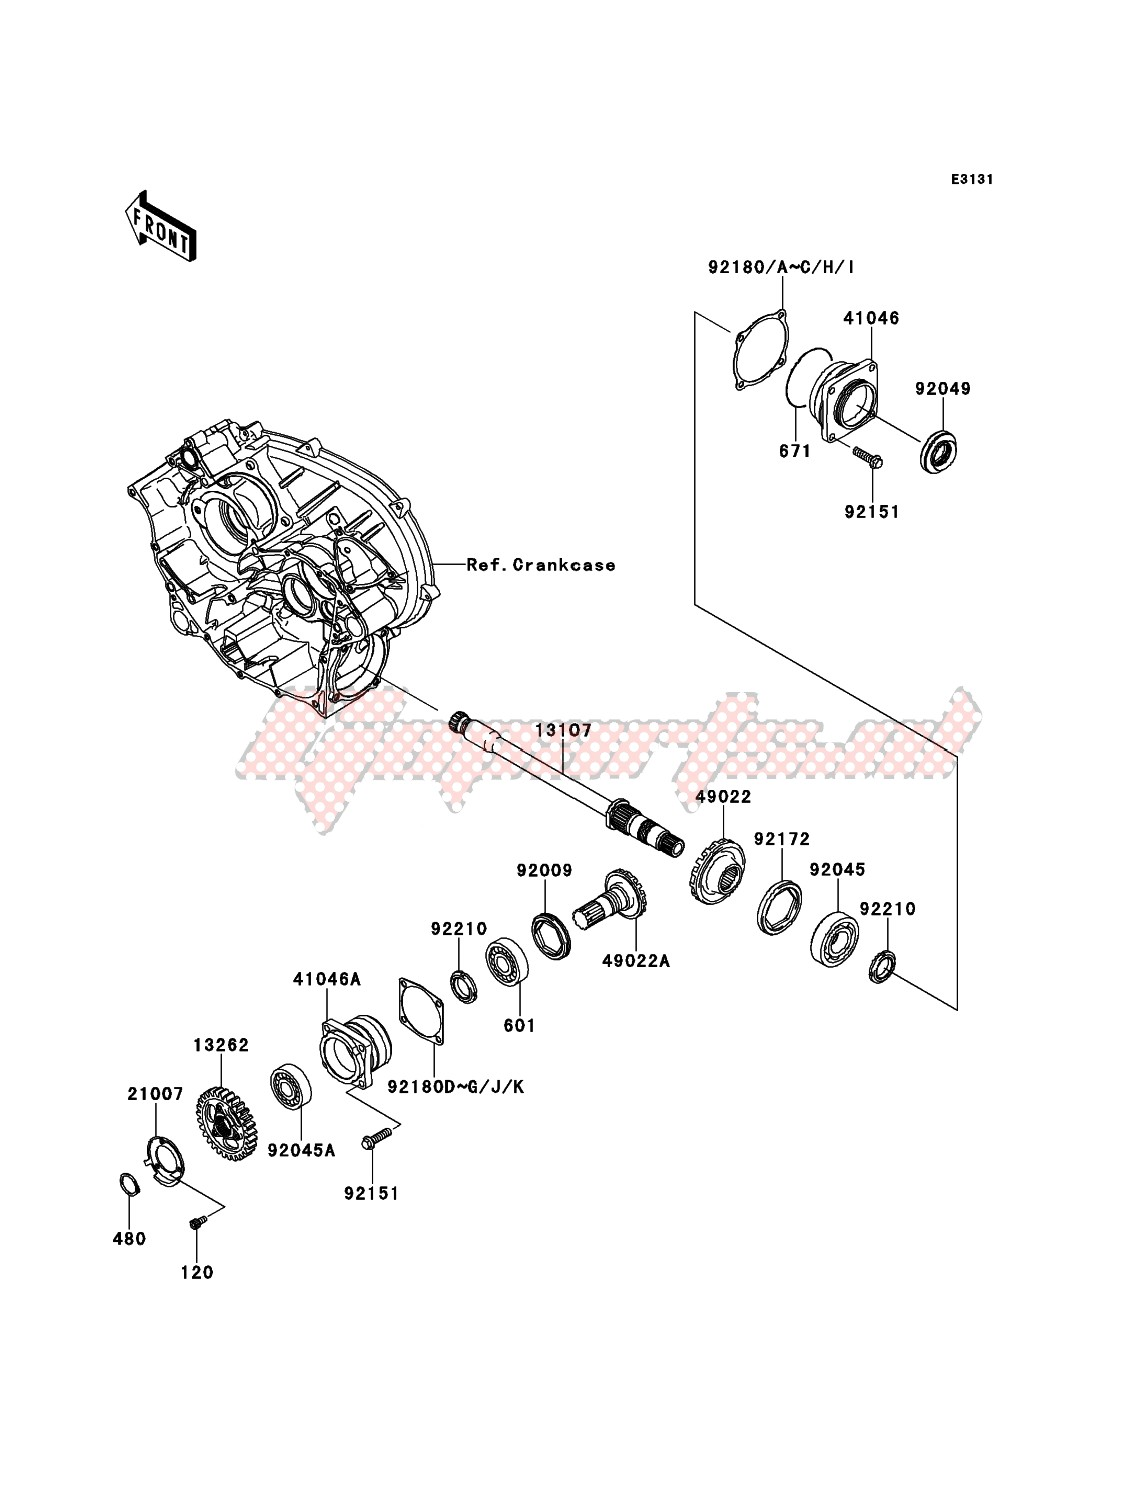 Engine-Front Bevel Gear